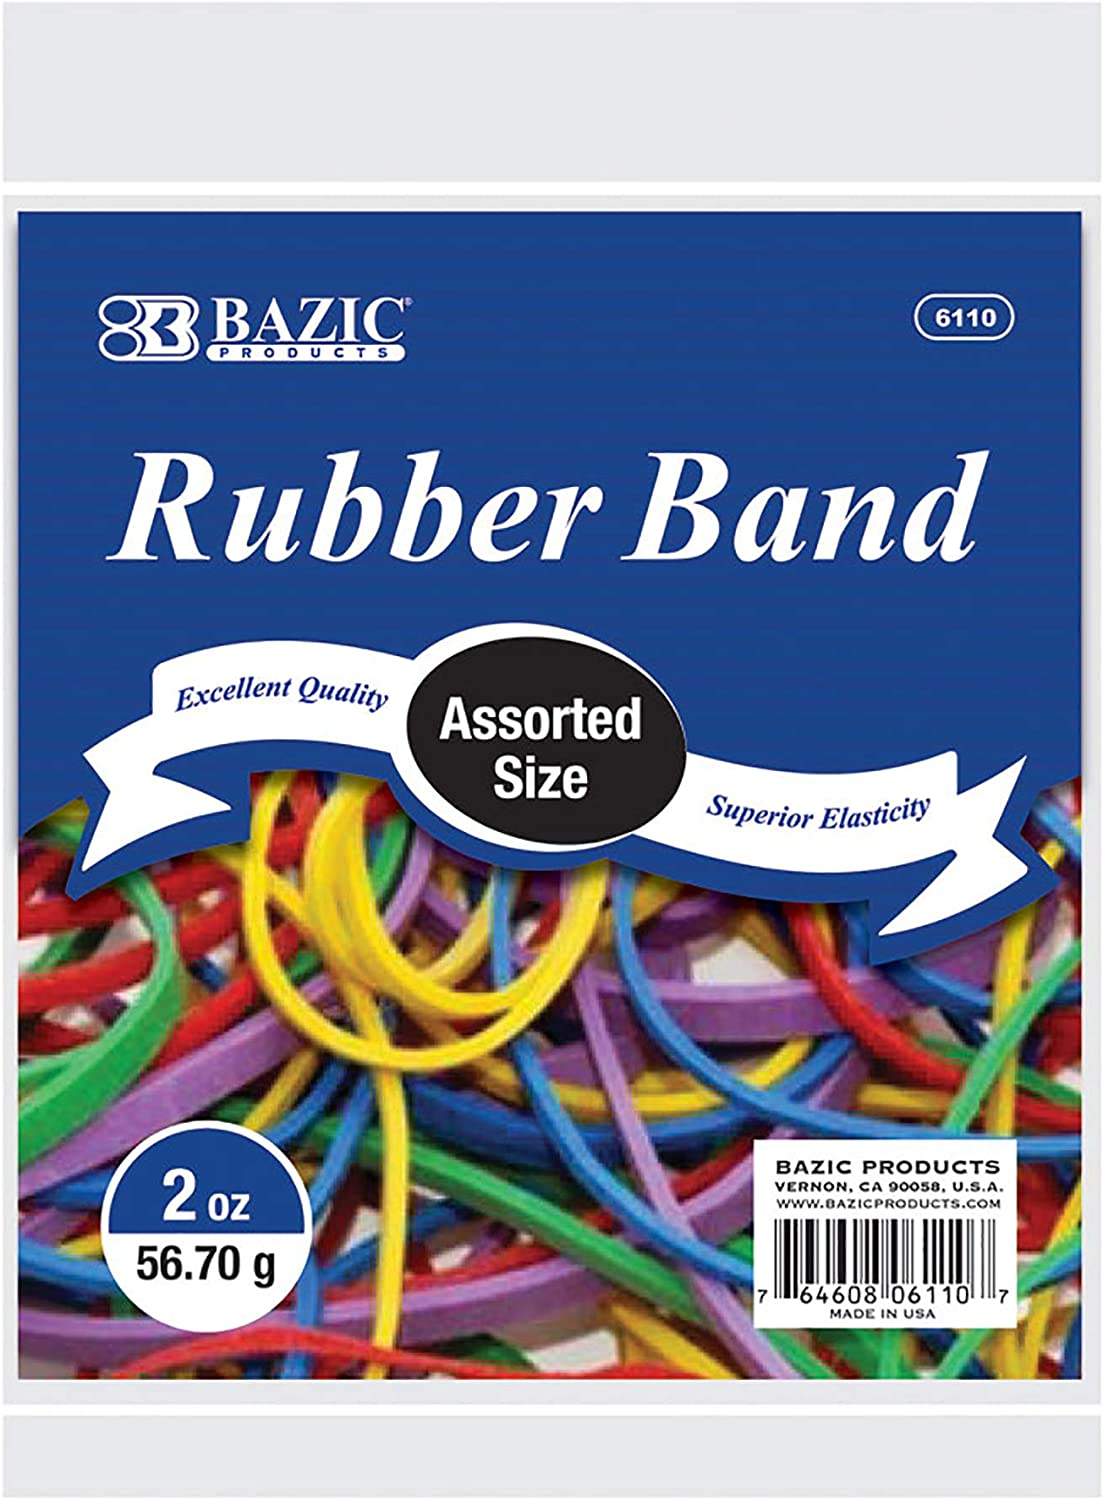 BAZIC 2 Oz./ 56.70 g Assorted Sizes & Color Rubber Bands - for File Folders Bank Paper Bills Money, General Purpose, Office Bank Home Supply - Color May Vary, 1-Pack